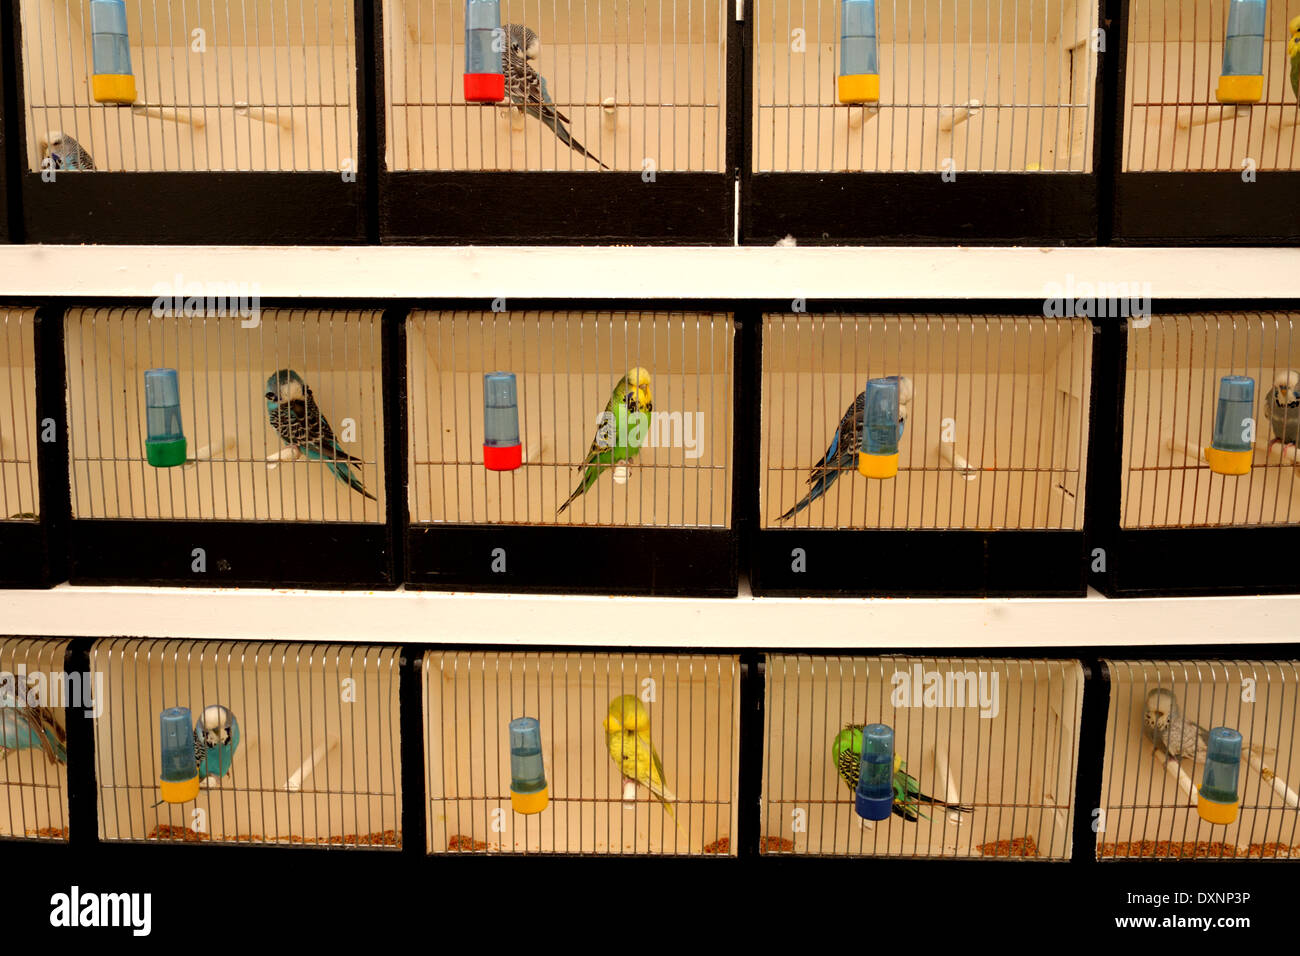 Budgies in cages at the Bahrain Animal Production Show, 2014, Bahrain International Endurance Village - Stock Image